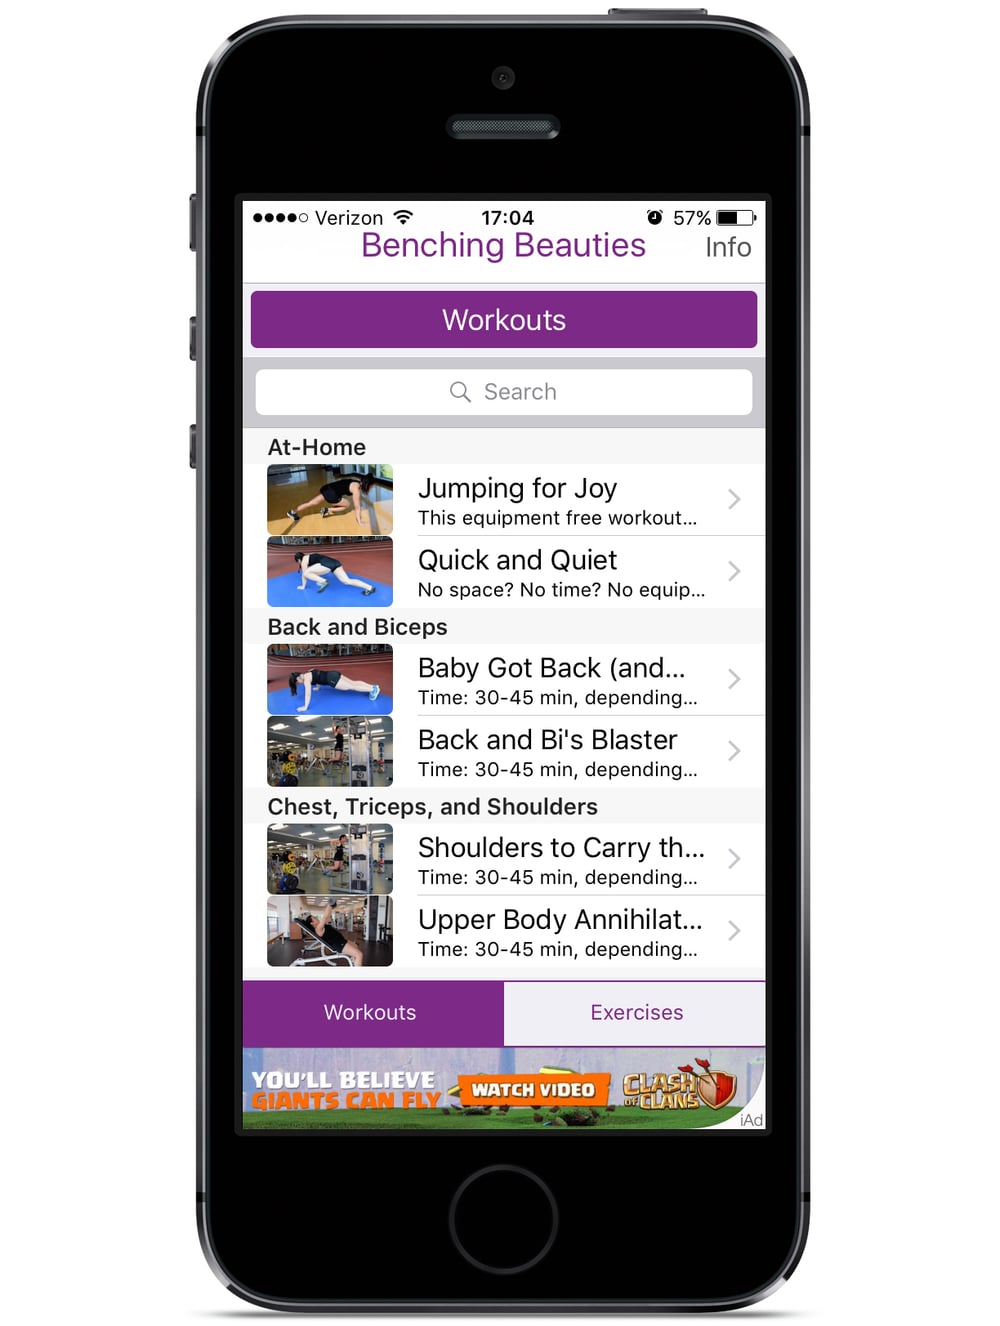 bb-iphone-mockup-workouts.jpg